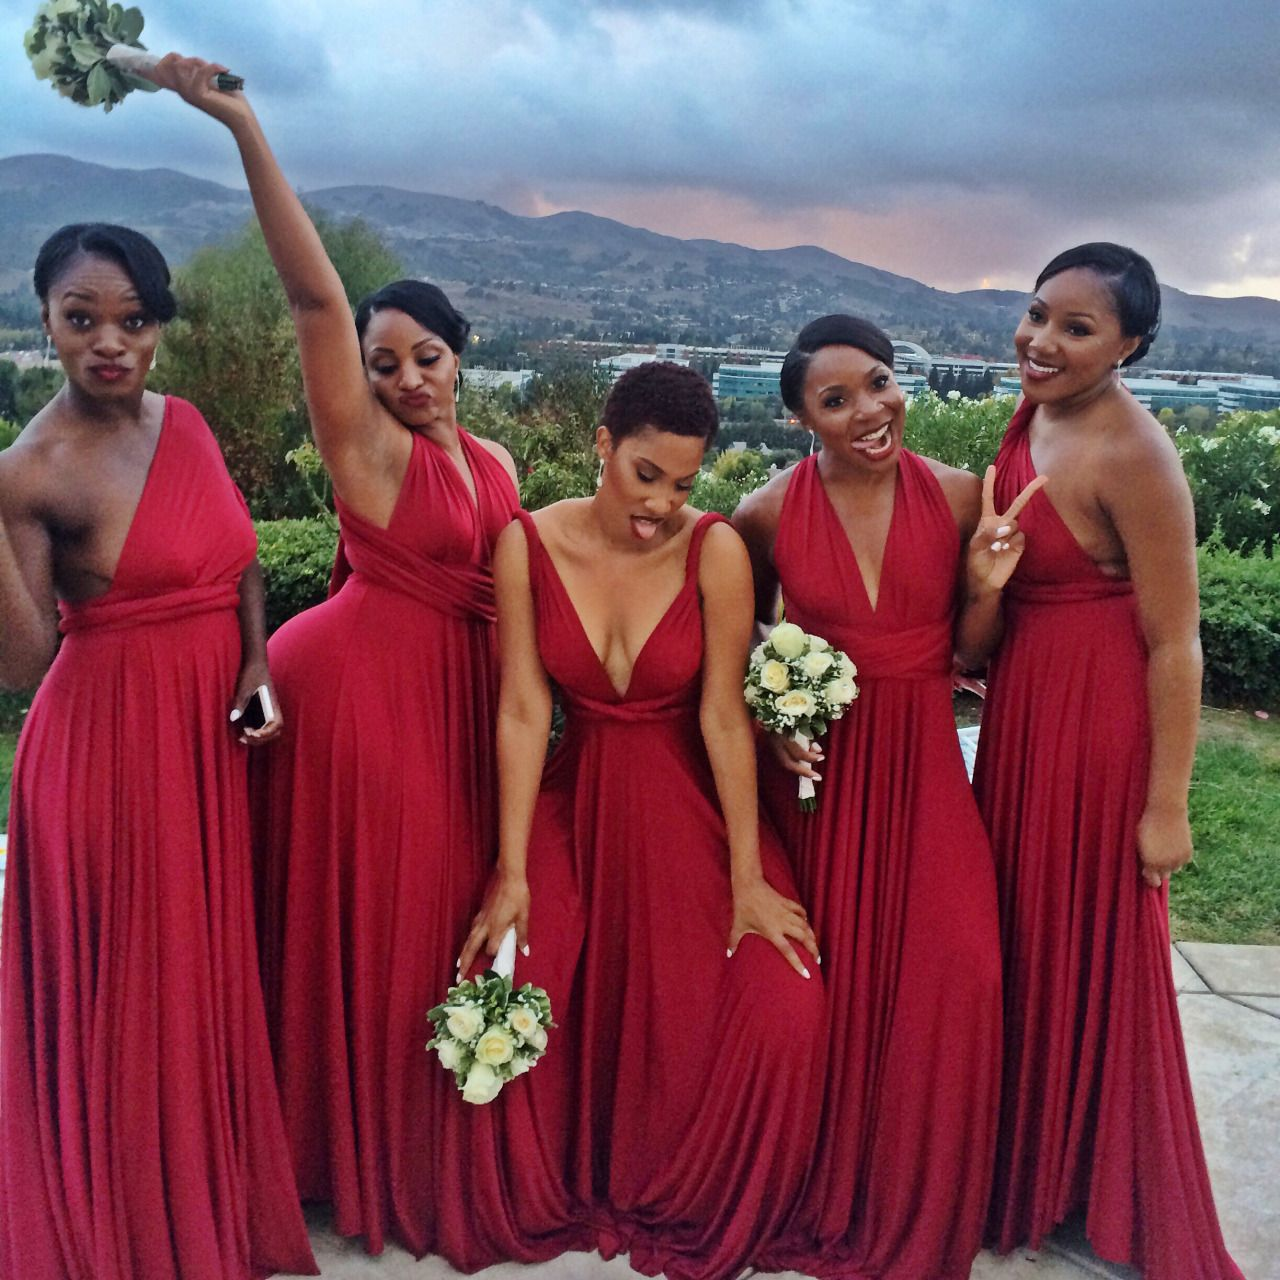 18 15 n 77 30 w 18 15 n 77 30 w sexy crazy cool beautiful bridesmaid dresses bridesmaid dress colors wedding dresses wedding attire red bridesmaids bridesmaids hairstyles burgundy bridesmaid black ombrellifo Image collections